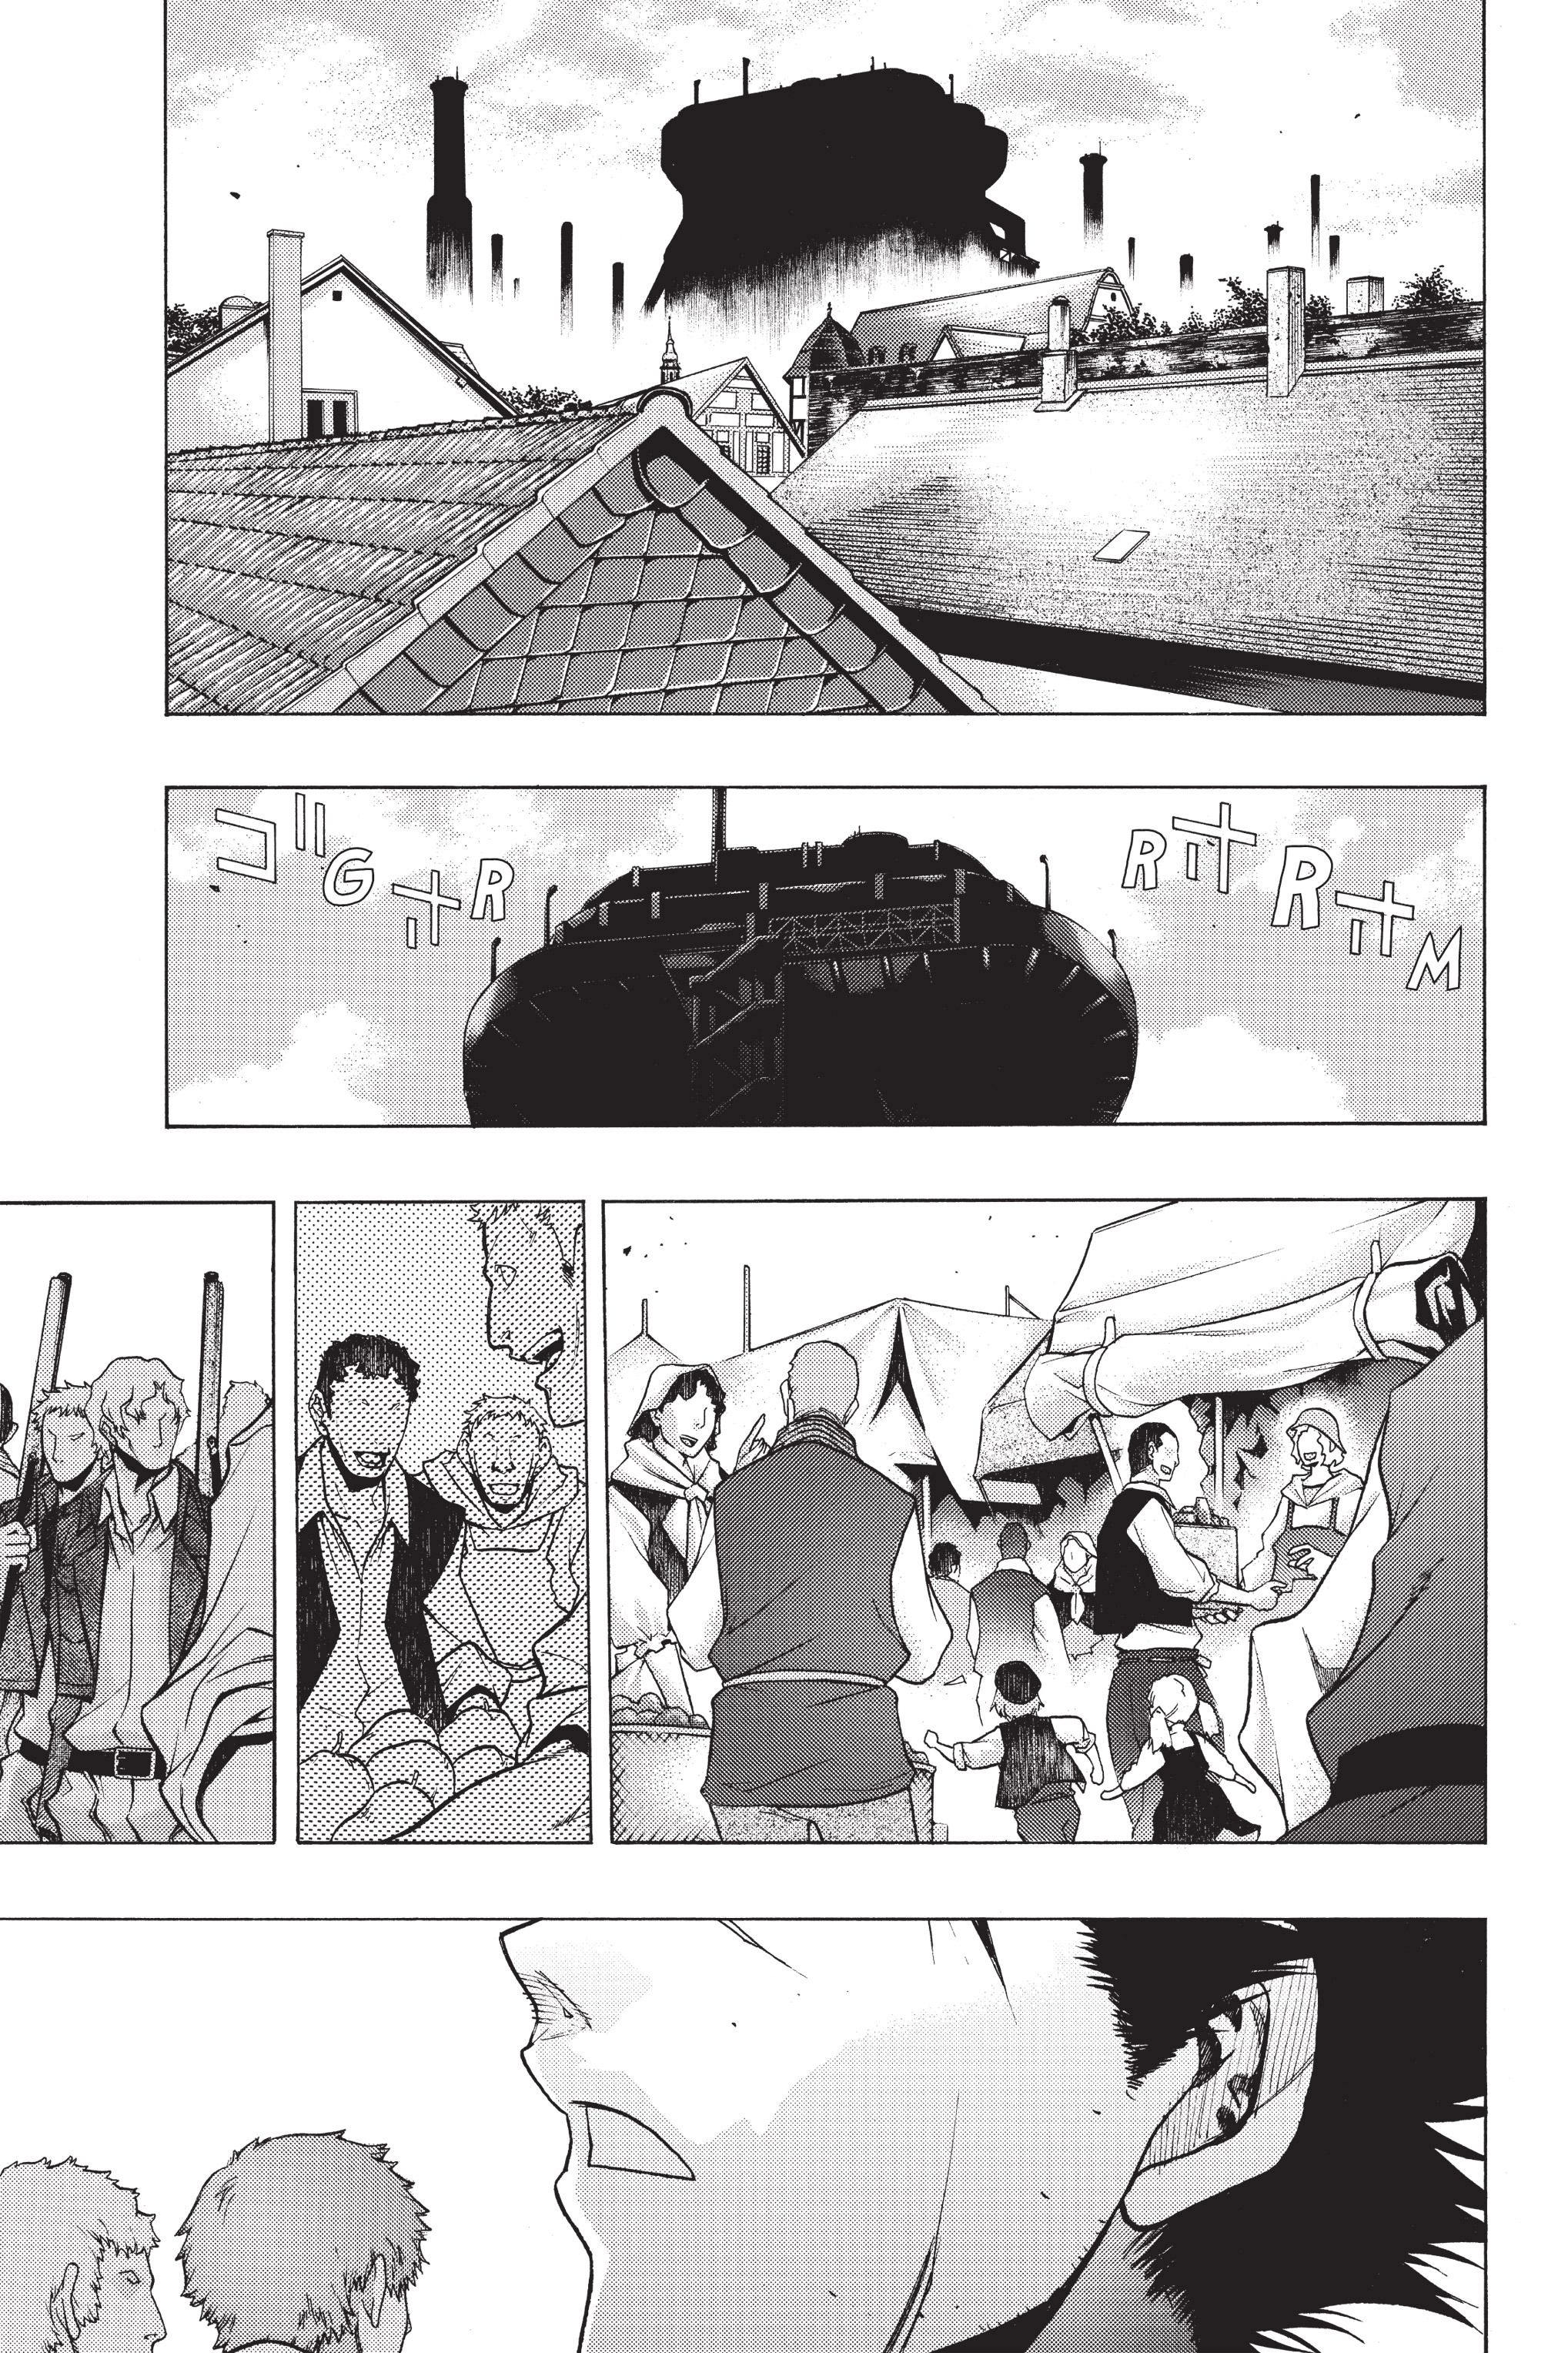 Read online Attack on Titan: Before the Fall comic -  Issue #5 - 115